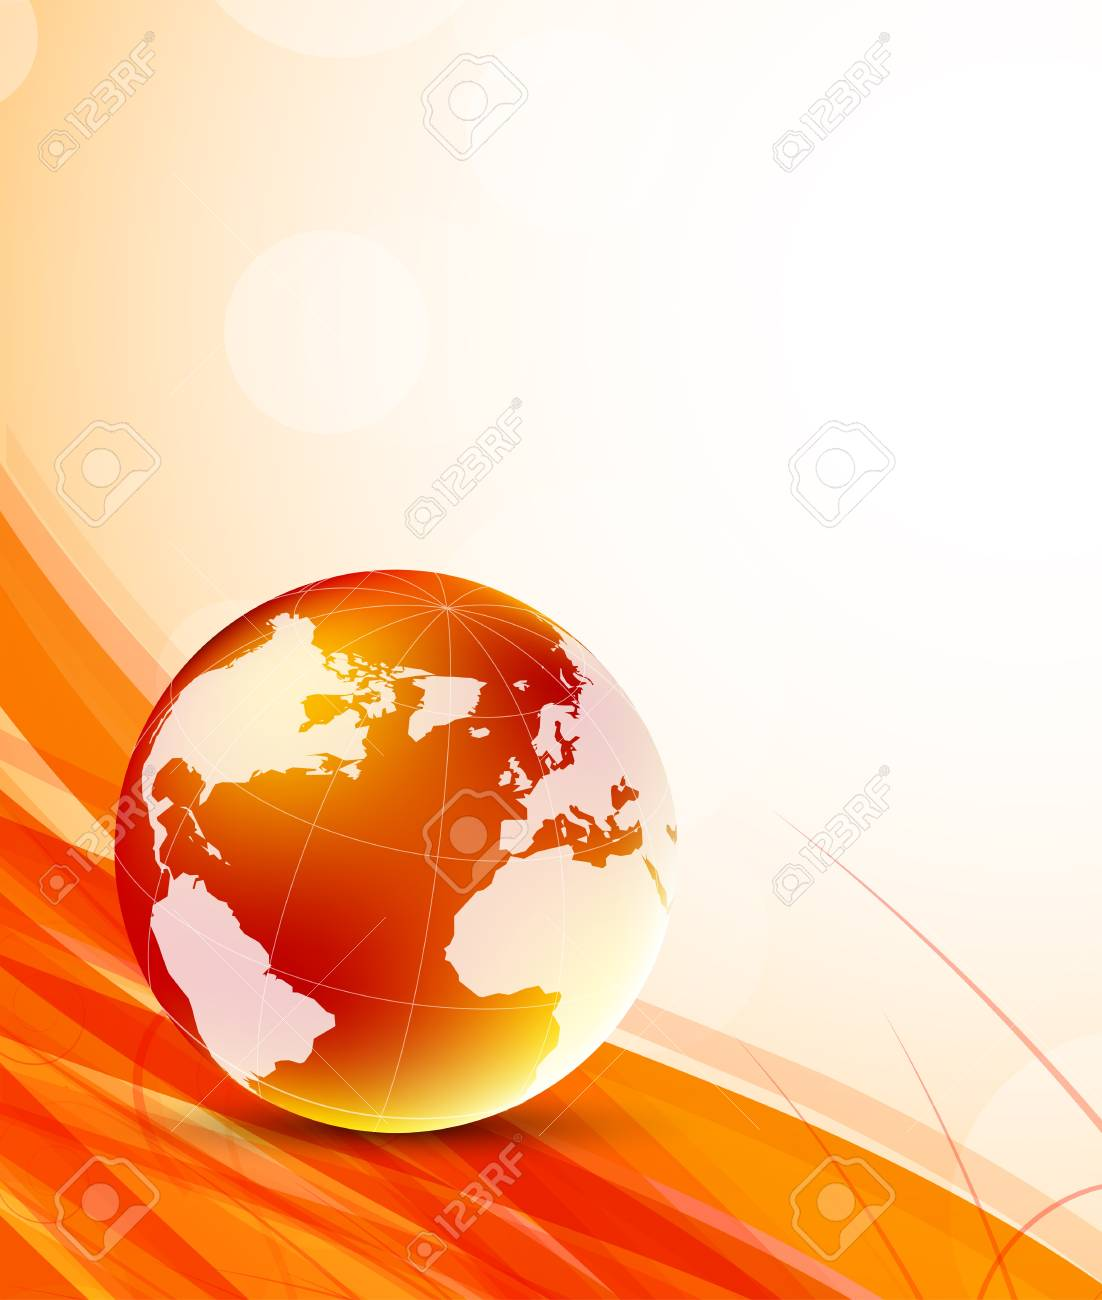 Background with orange globes Stock Vector - 15222541